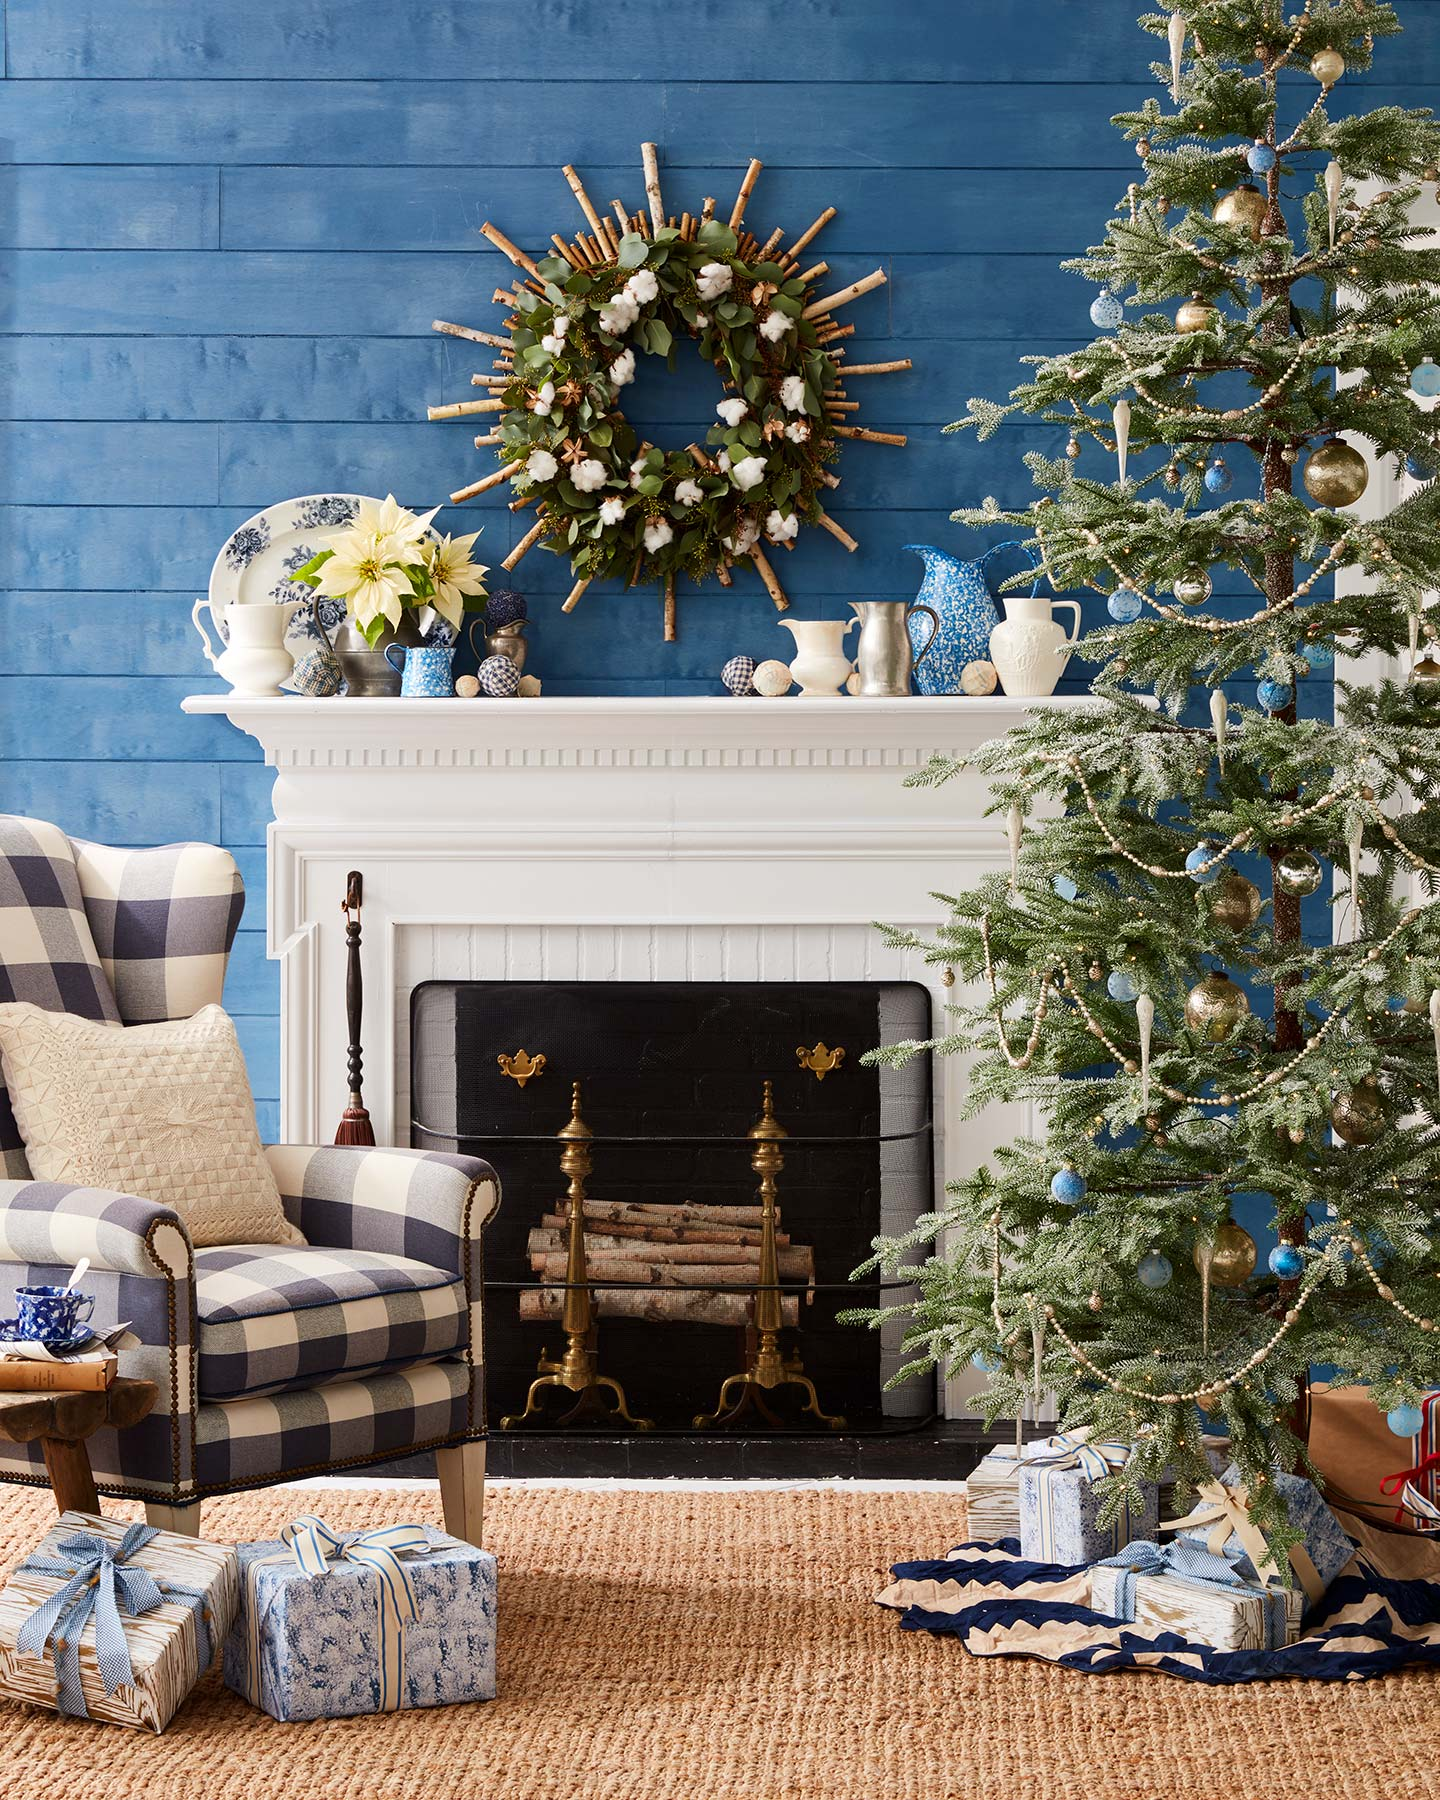 Holiday room scene with Christmas tree and mantle.